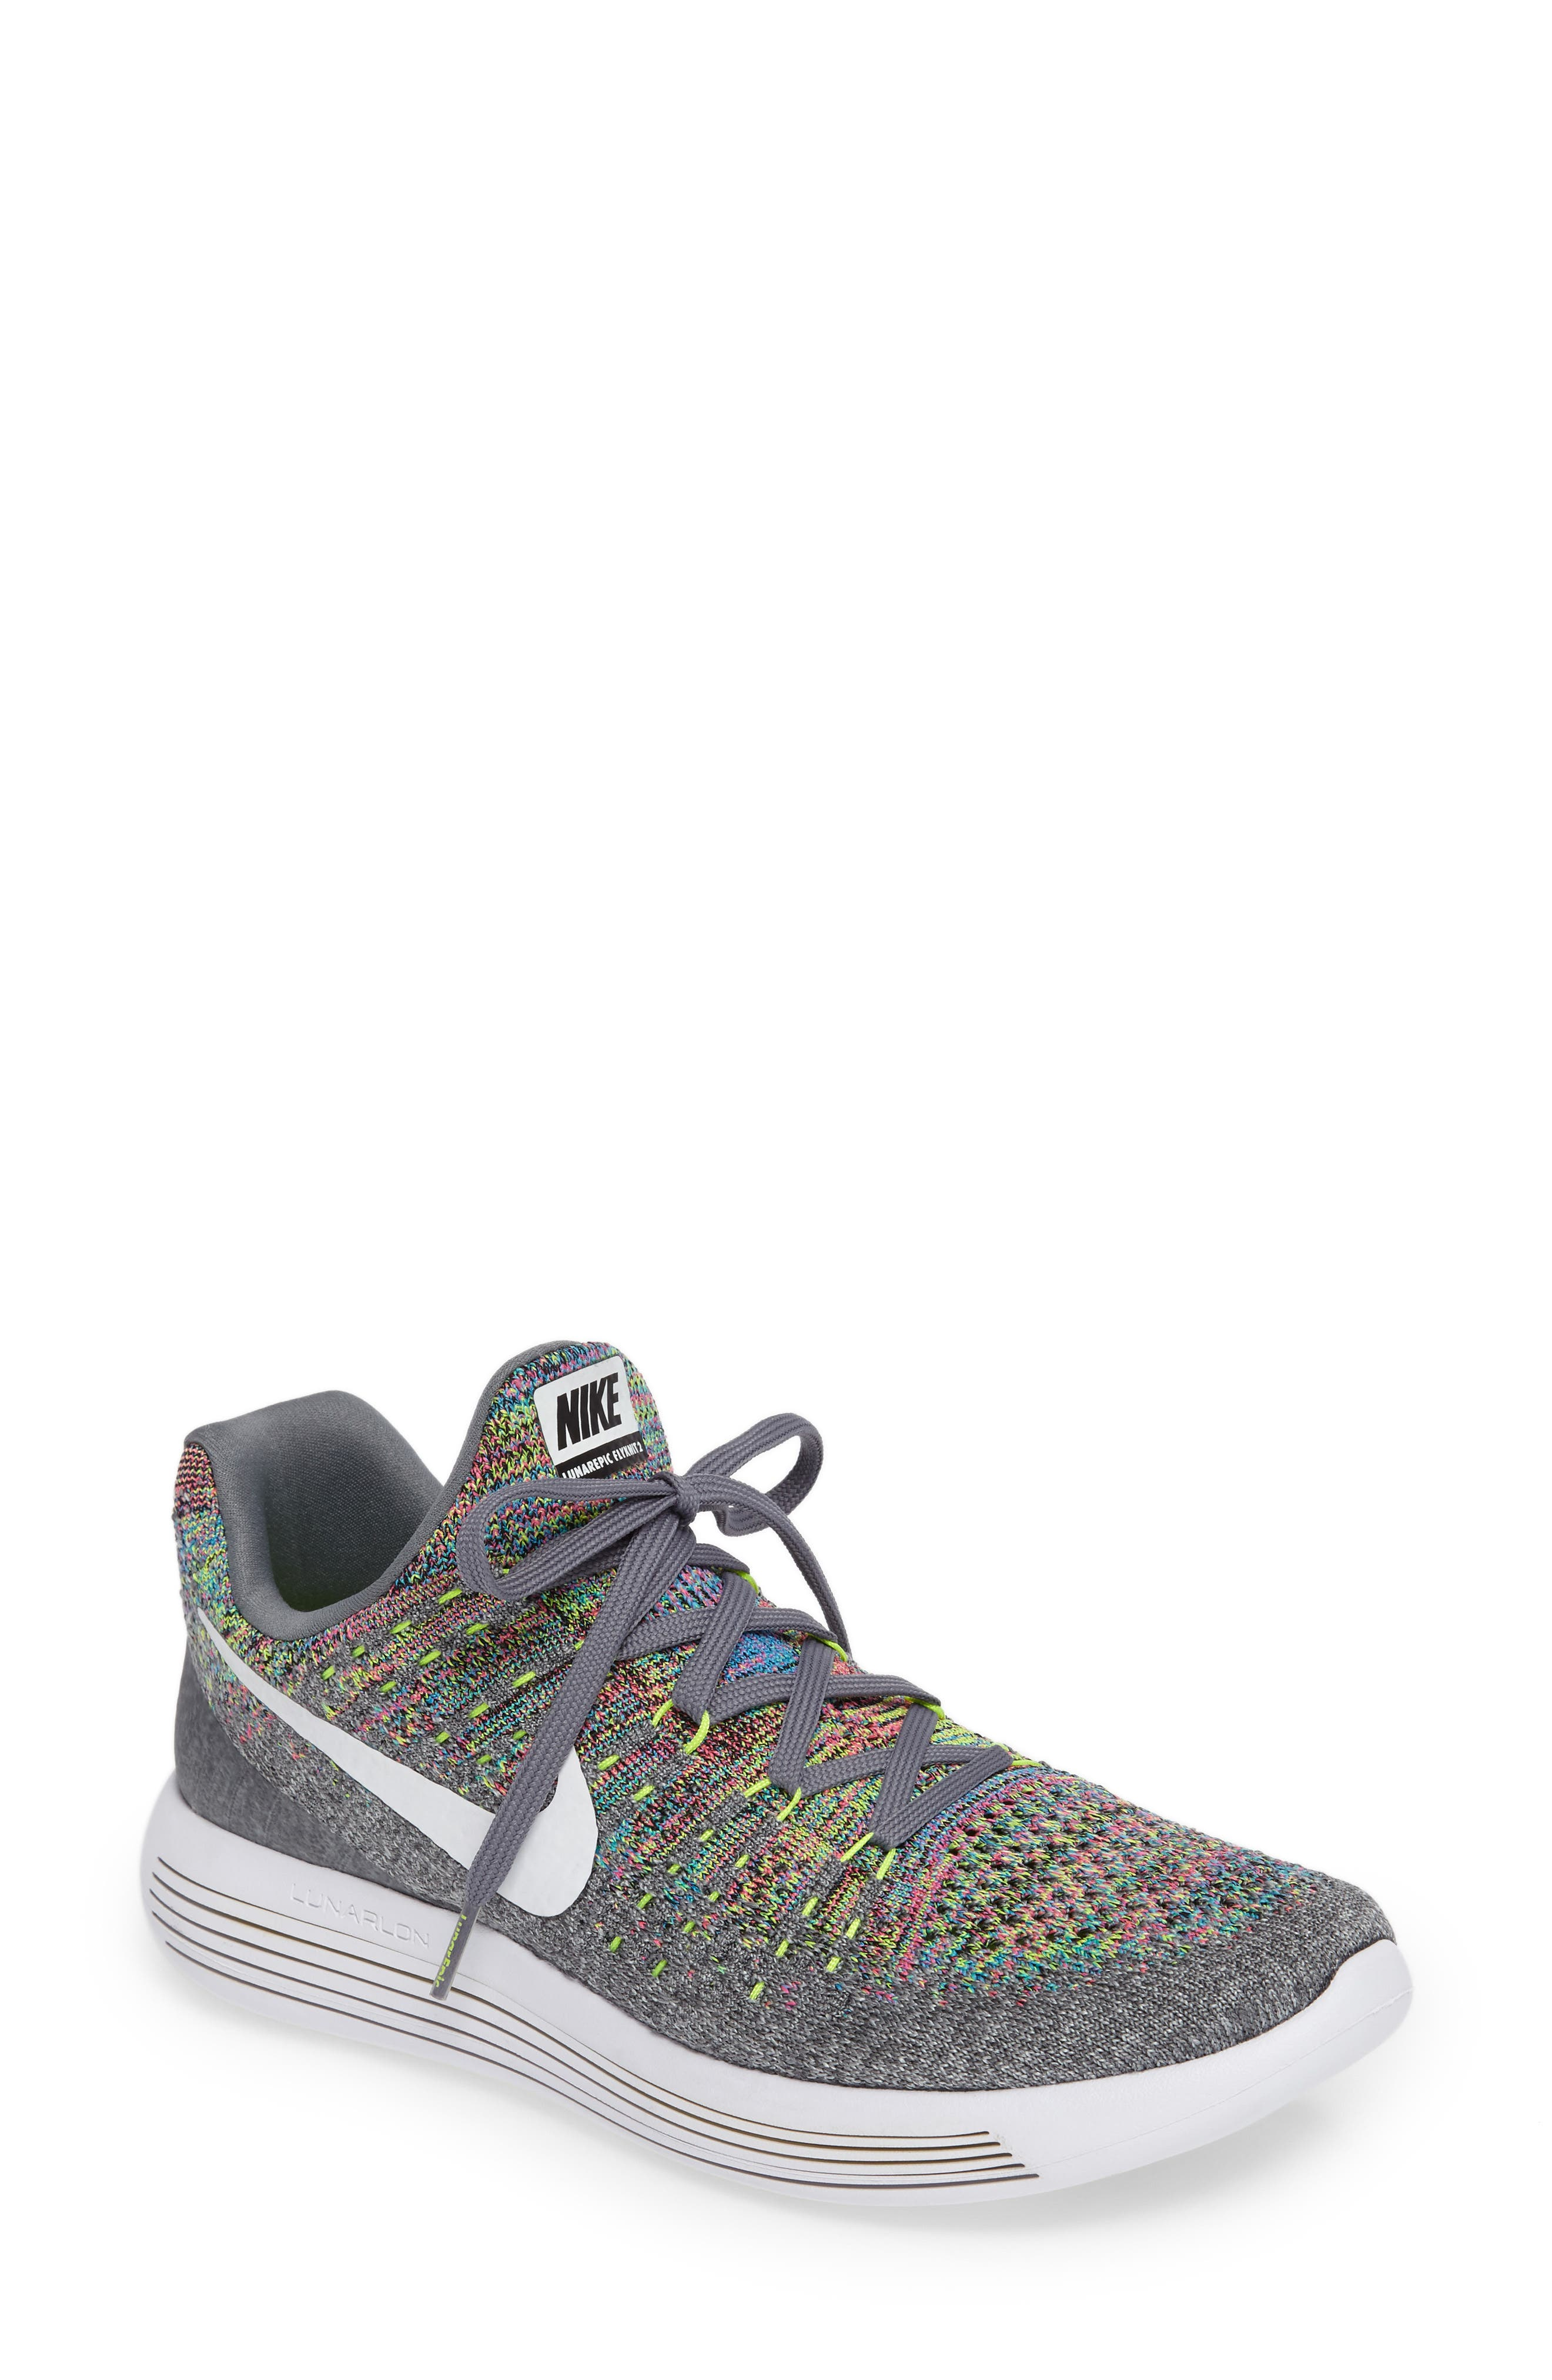 LunarEpic Low Flyknit 2 Running Shoe,                         Main,                         color, Grey/ White/ Volt/ Blue Glow